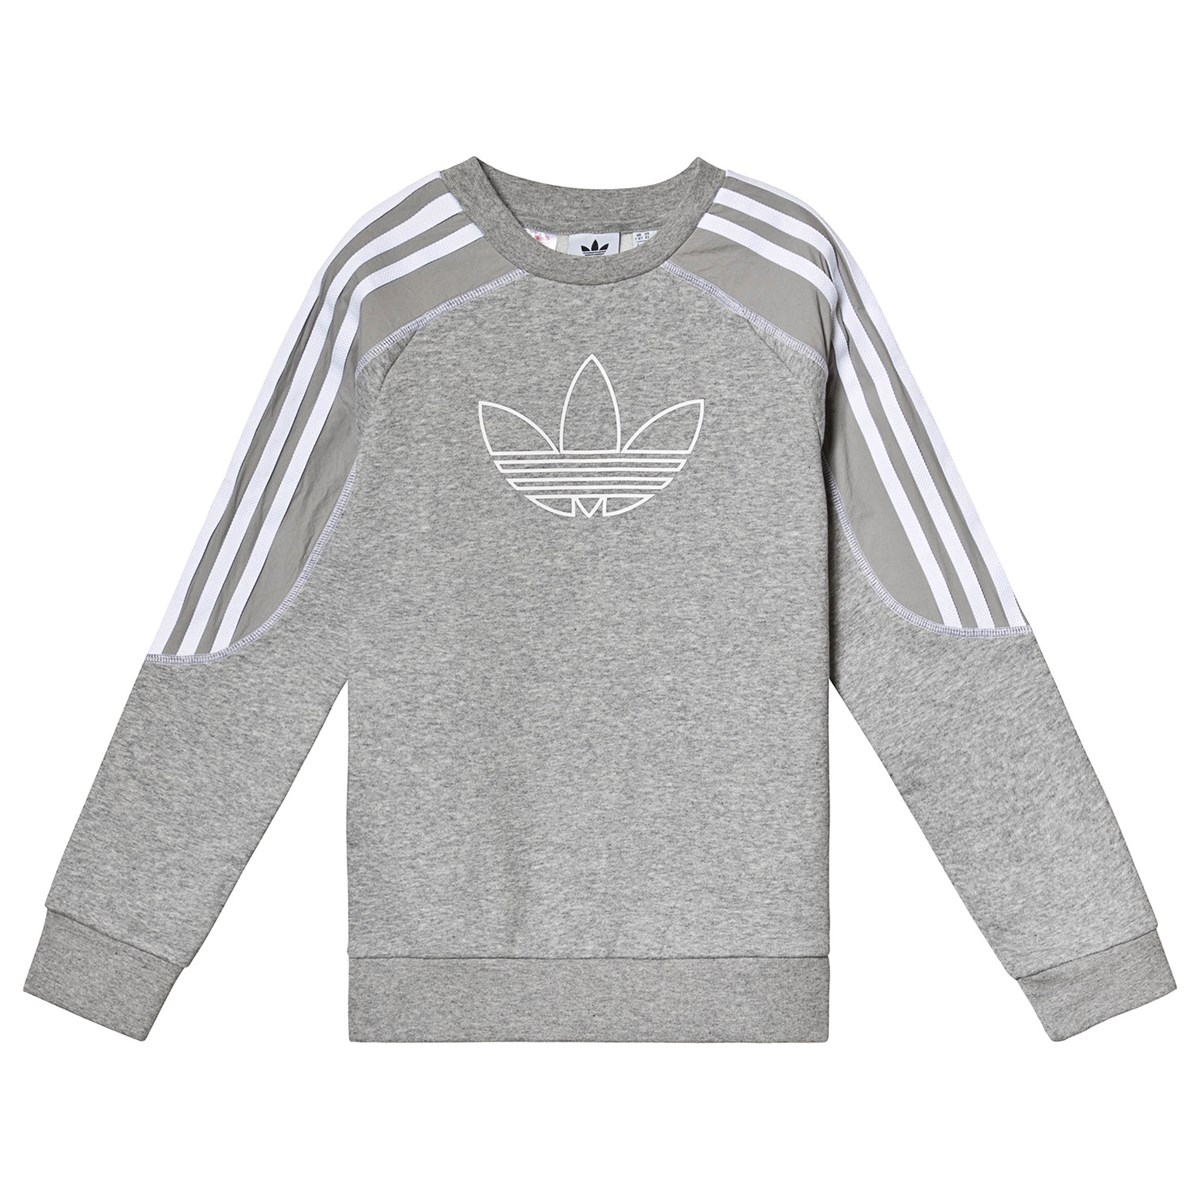 Allsaints Seattle Wa: Adidas Originals Grey Branded Sweatshirt